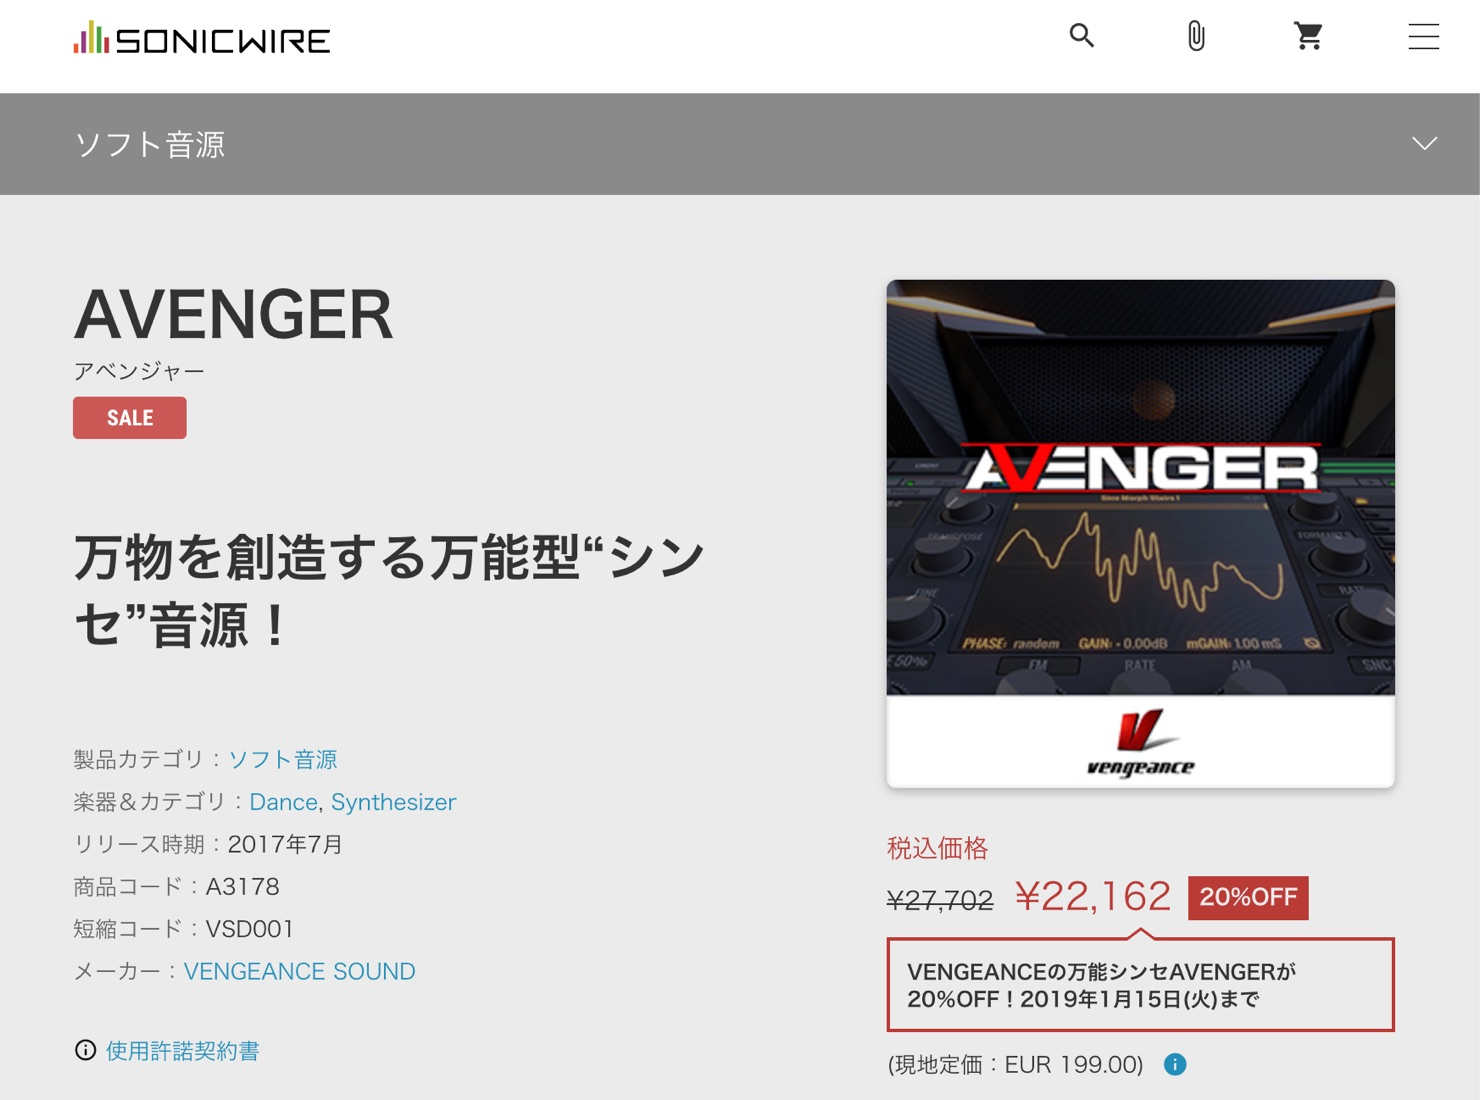 sonicwire-avenger-sale-2018